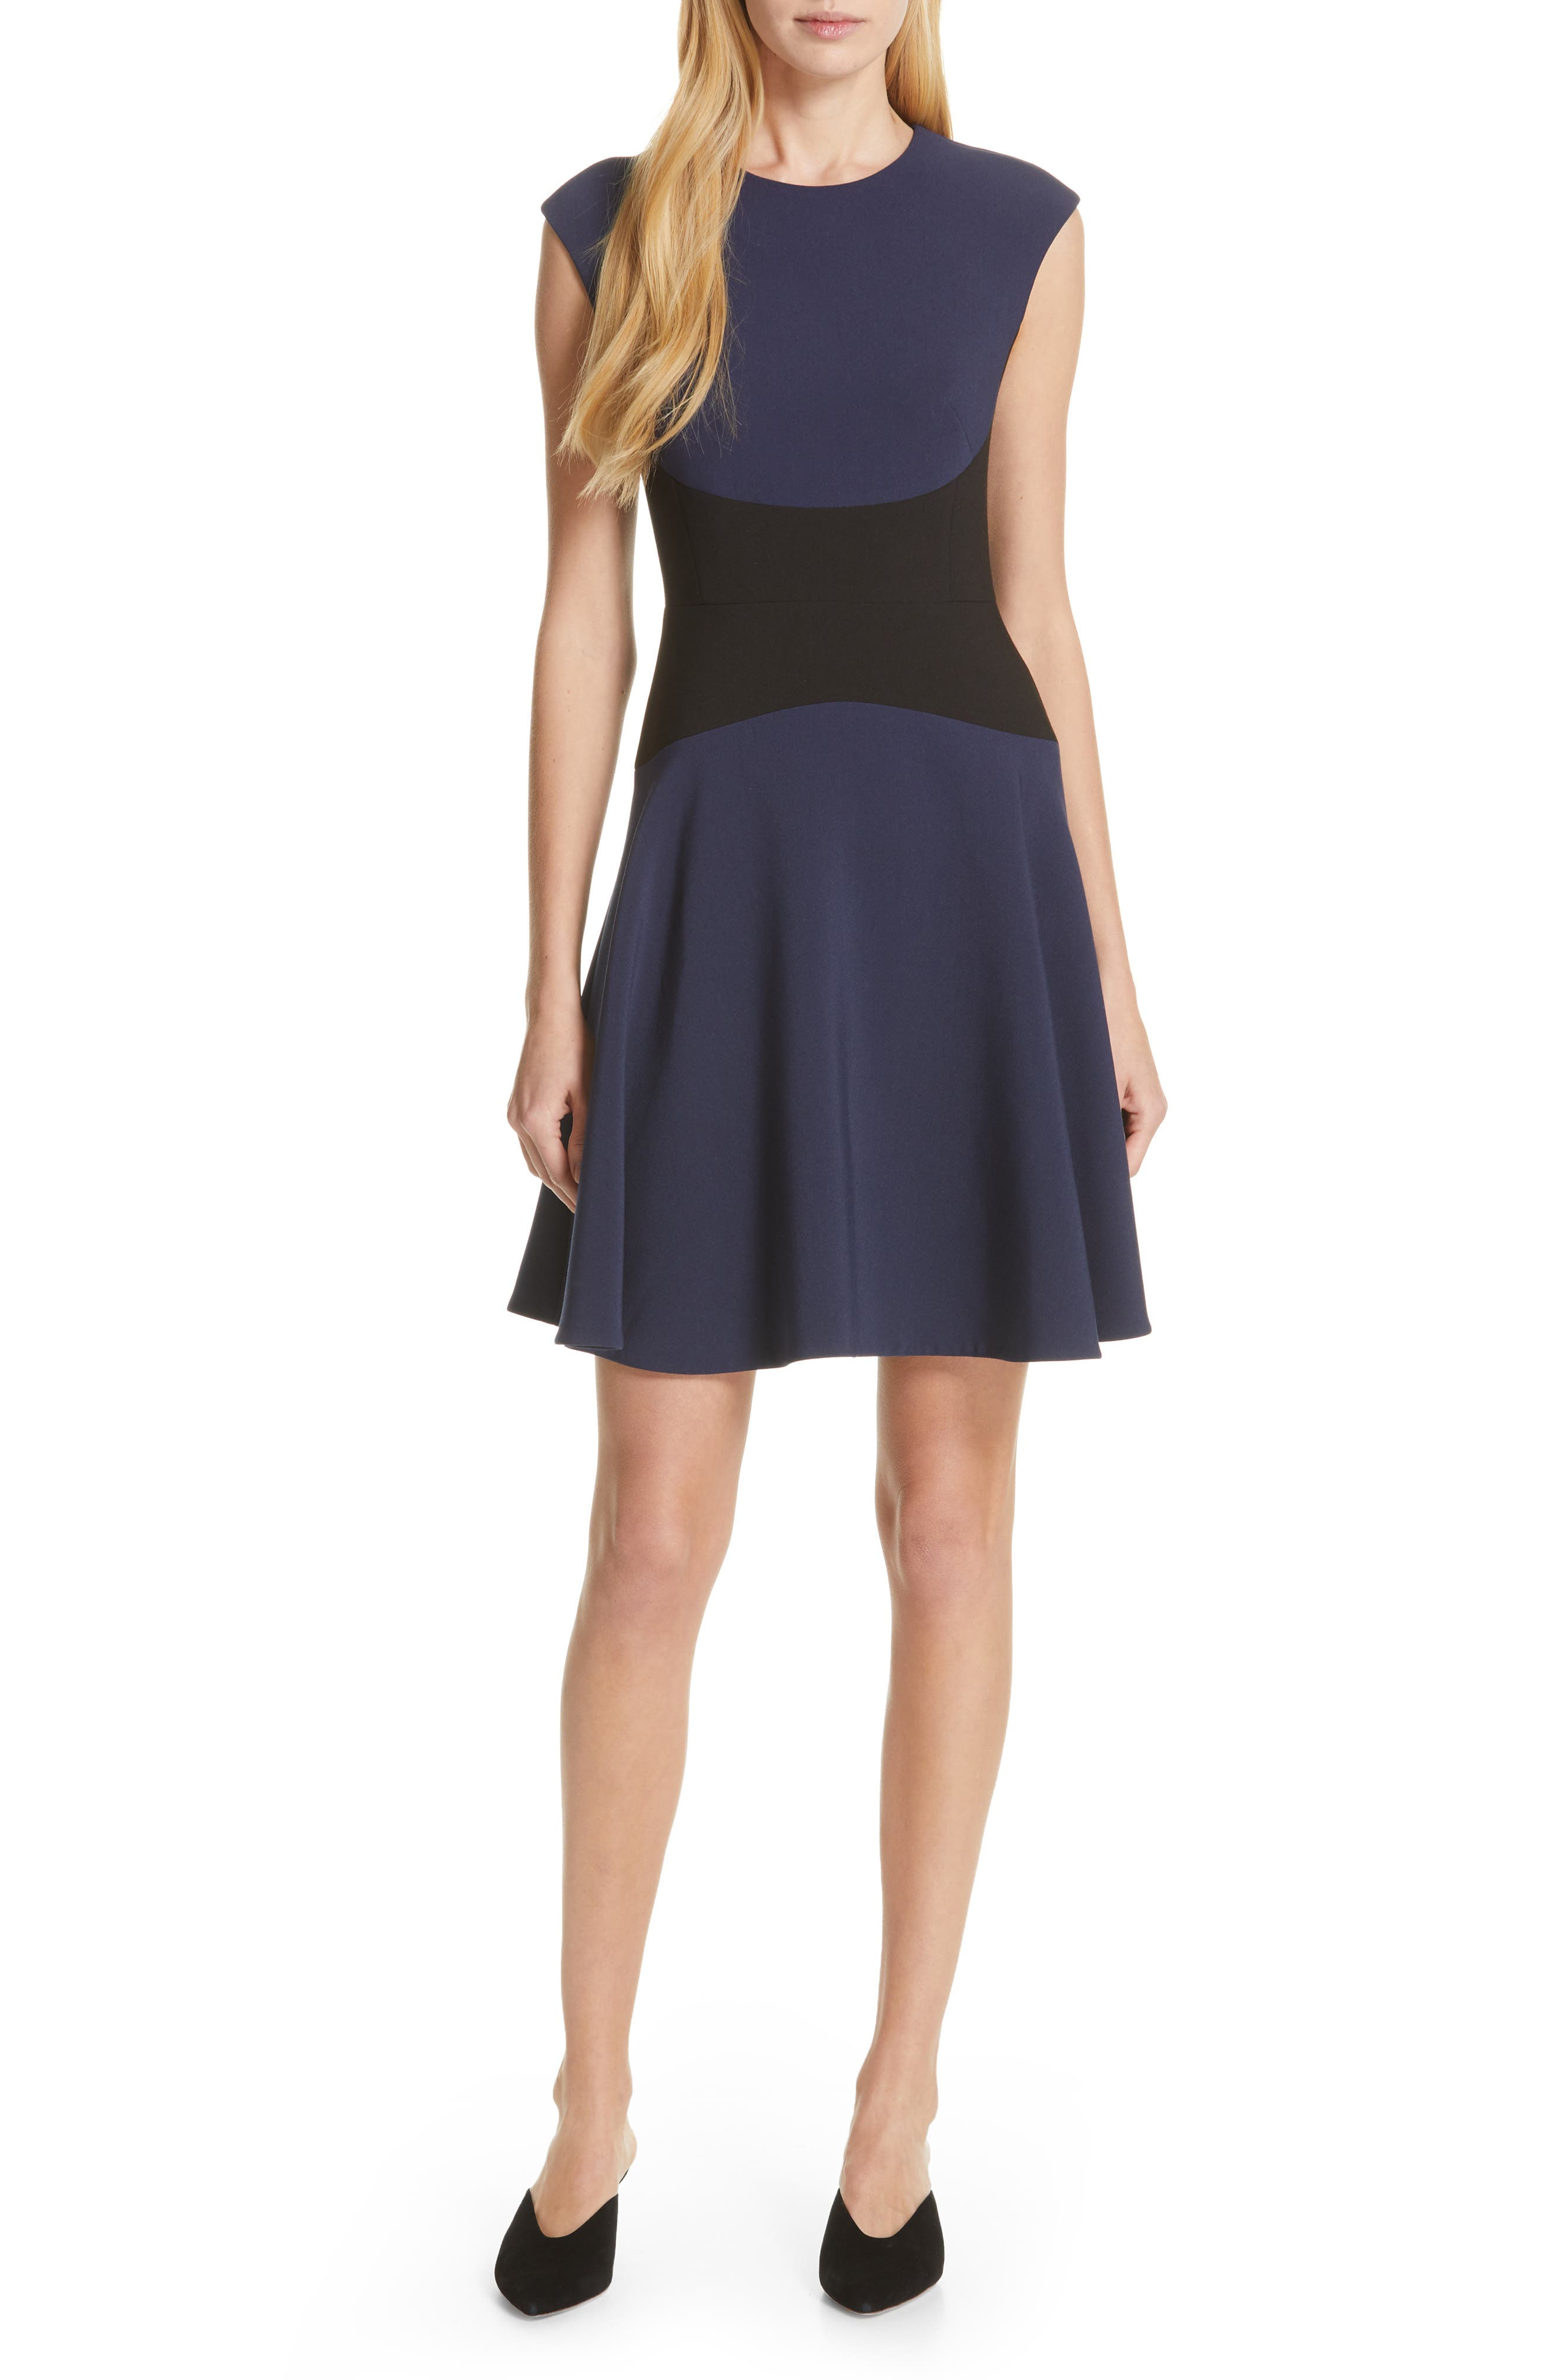 Kate Spade New York Colorblock Fit & Flare Dress, Blue